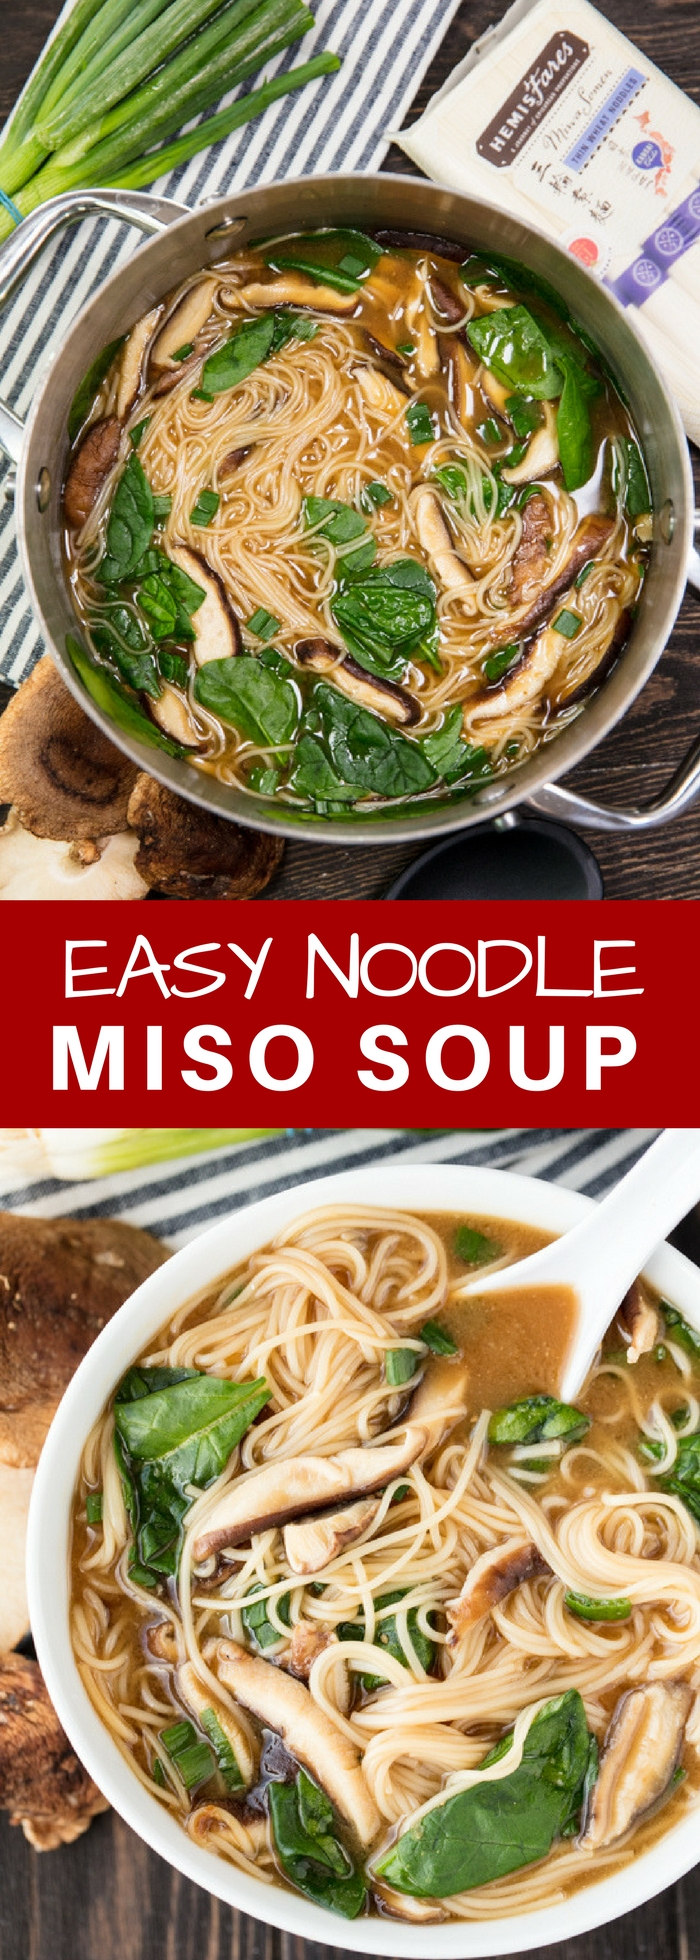 Traditional Miso Soup gets some tasty, and filling additions in this easy to make Noodle Miso Soup.